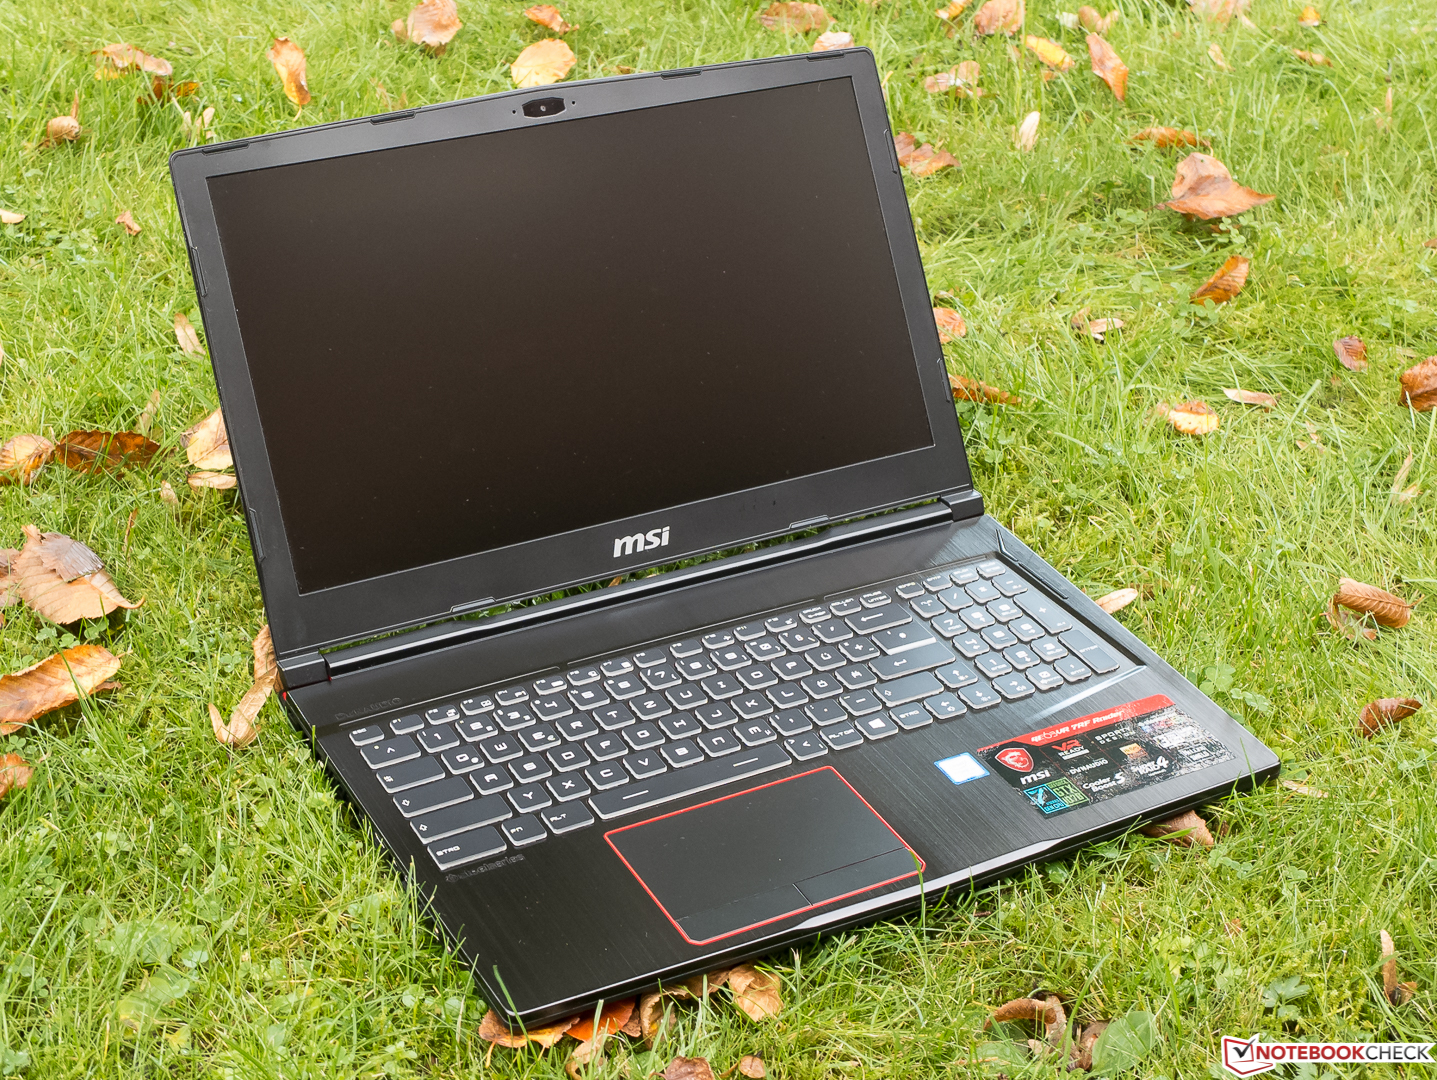 Msi Ge63vr Raider 075 I7 7700hq Gtx 1070 Full Hd Laptop Review Mouse Wireless No Merk Lenovo Asus Macbook Toshiba Acer We Did Not Notice Any Significant Deficiencies Such As Irregular Gap Dimensions Overall The Build Seems To Be Stable And Appropriate For This Price Range